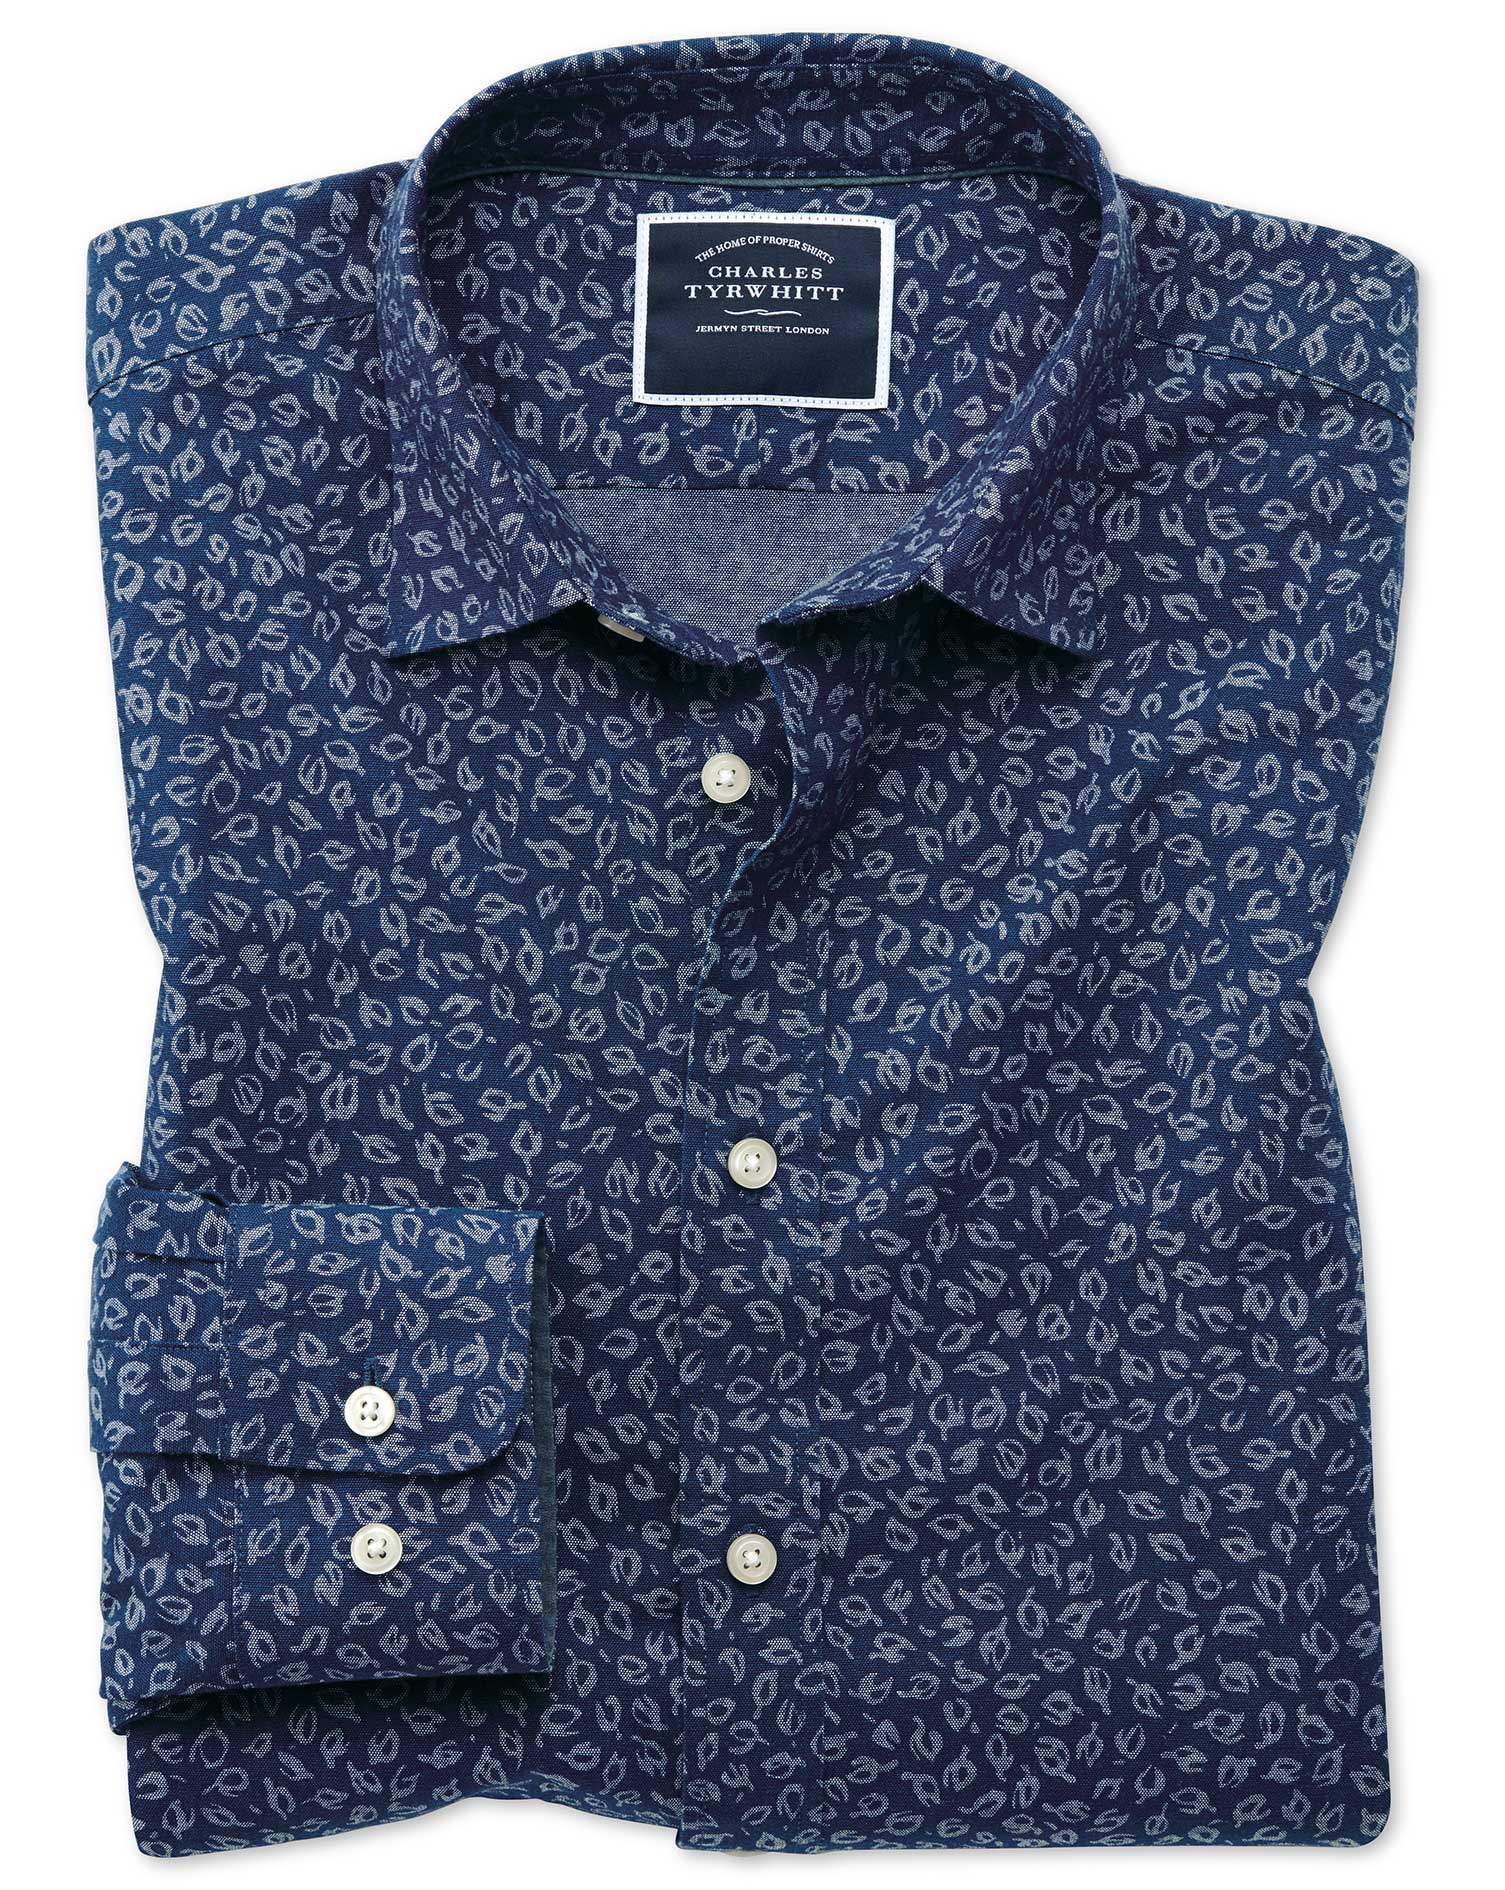 Classic Fit Leaf Print Blue Chambray Cotton Shirt Single Cuff Size XXXL by Charles Tyrwhitt